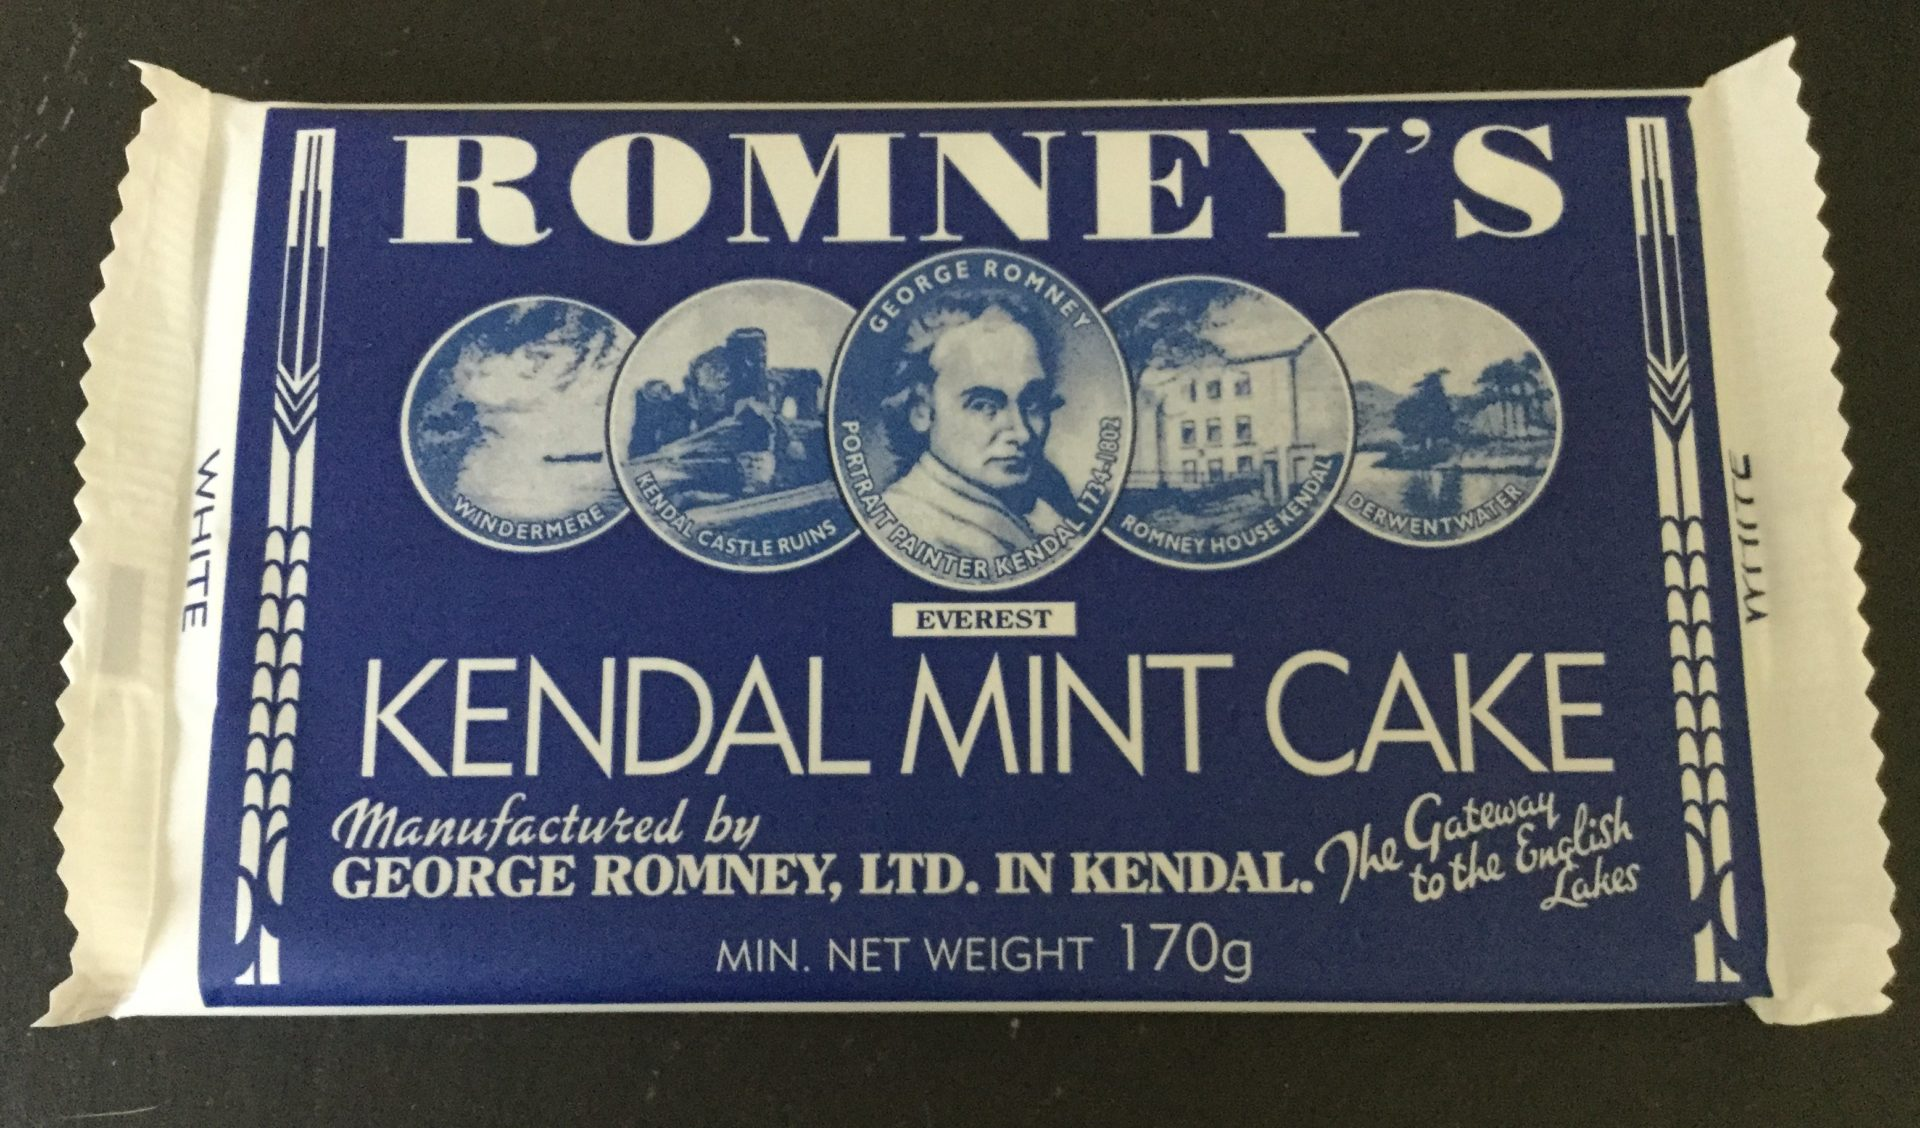 Kendal Mint Cake – A Top of the World Recipe